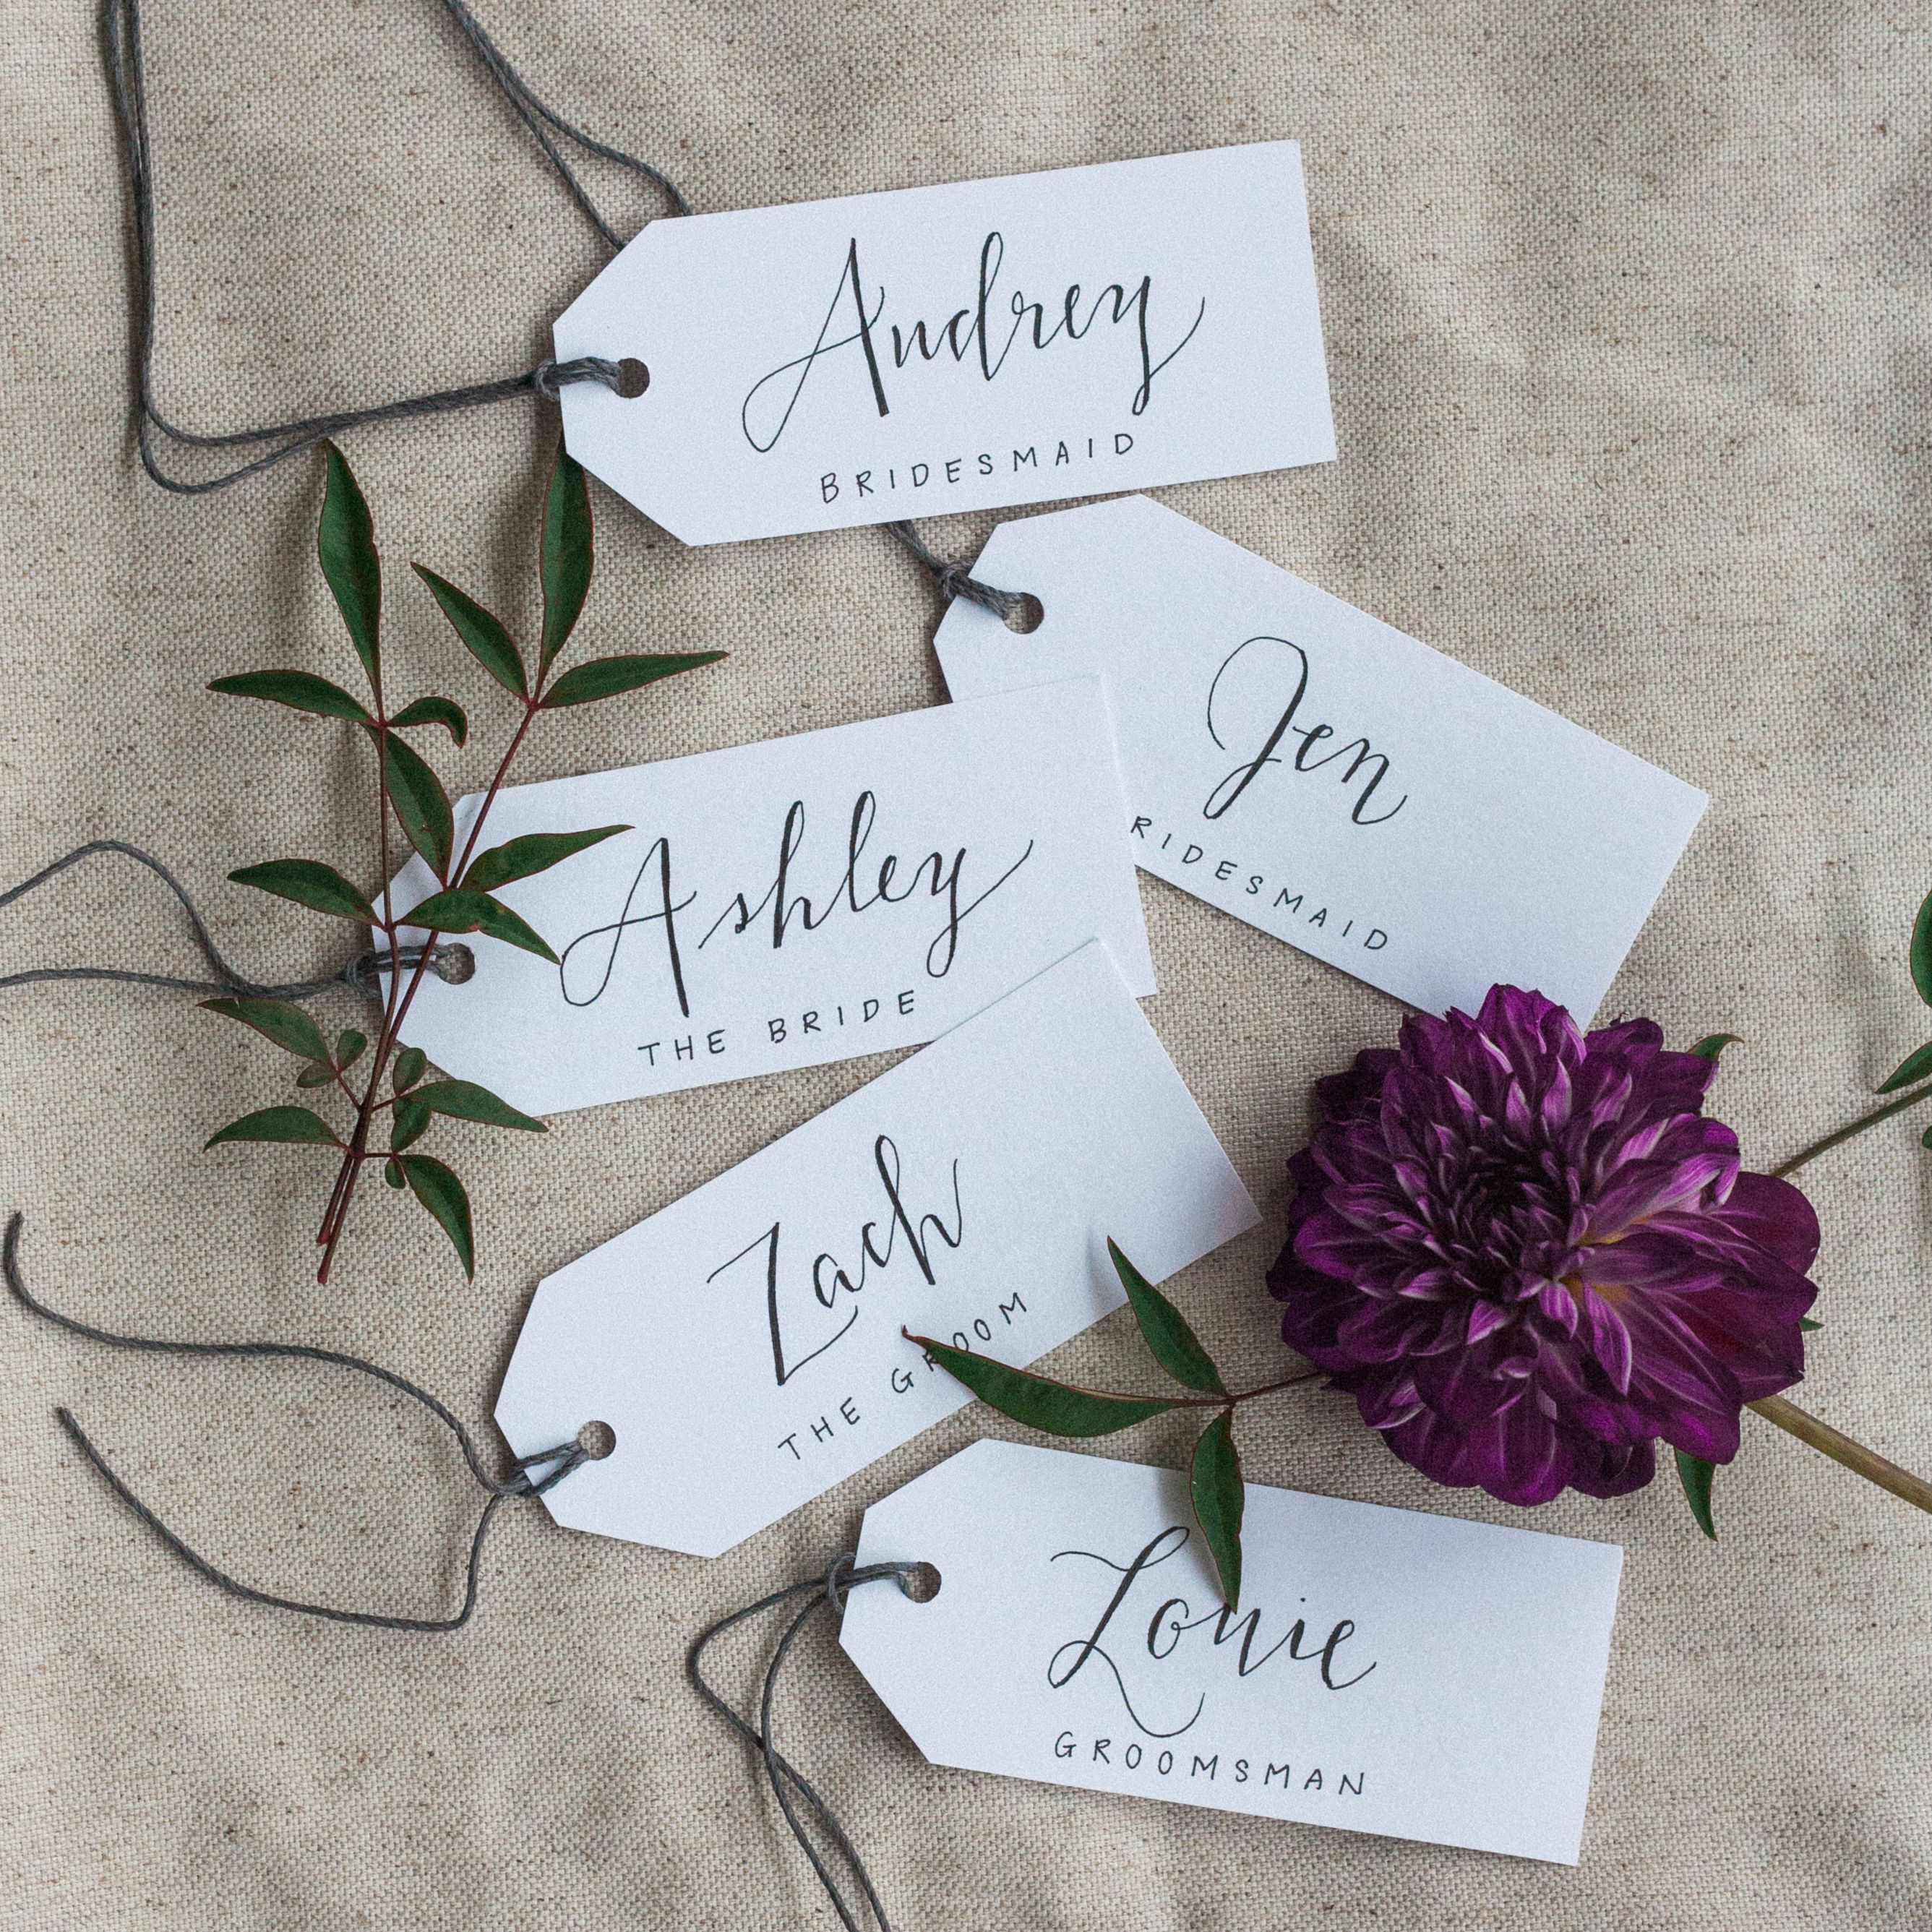 wedding party name tags the bride nametag maid of honor On name tags for weddings